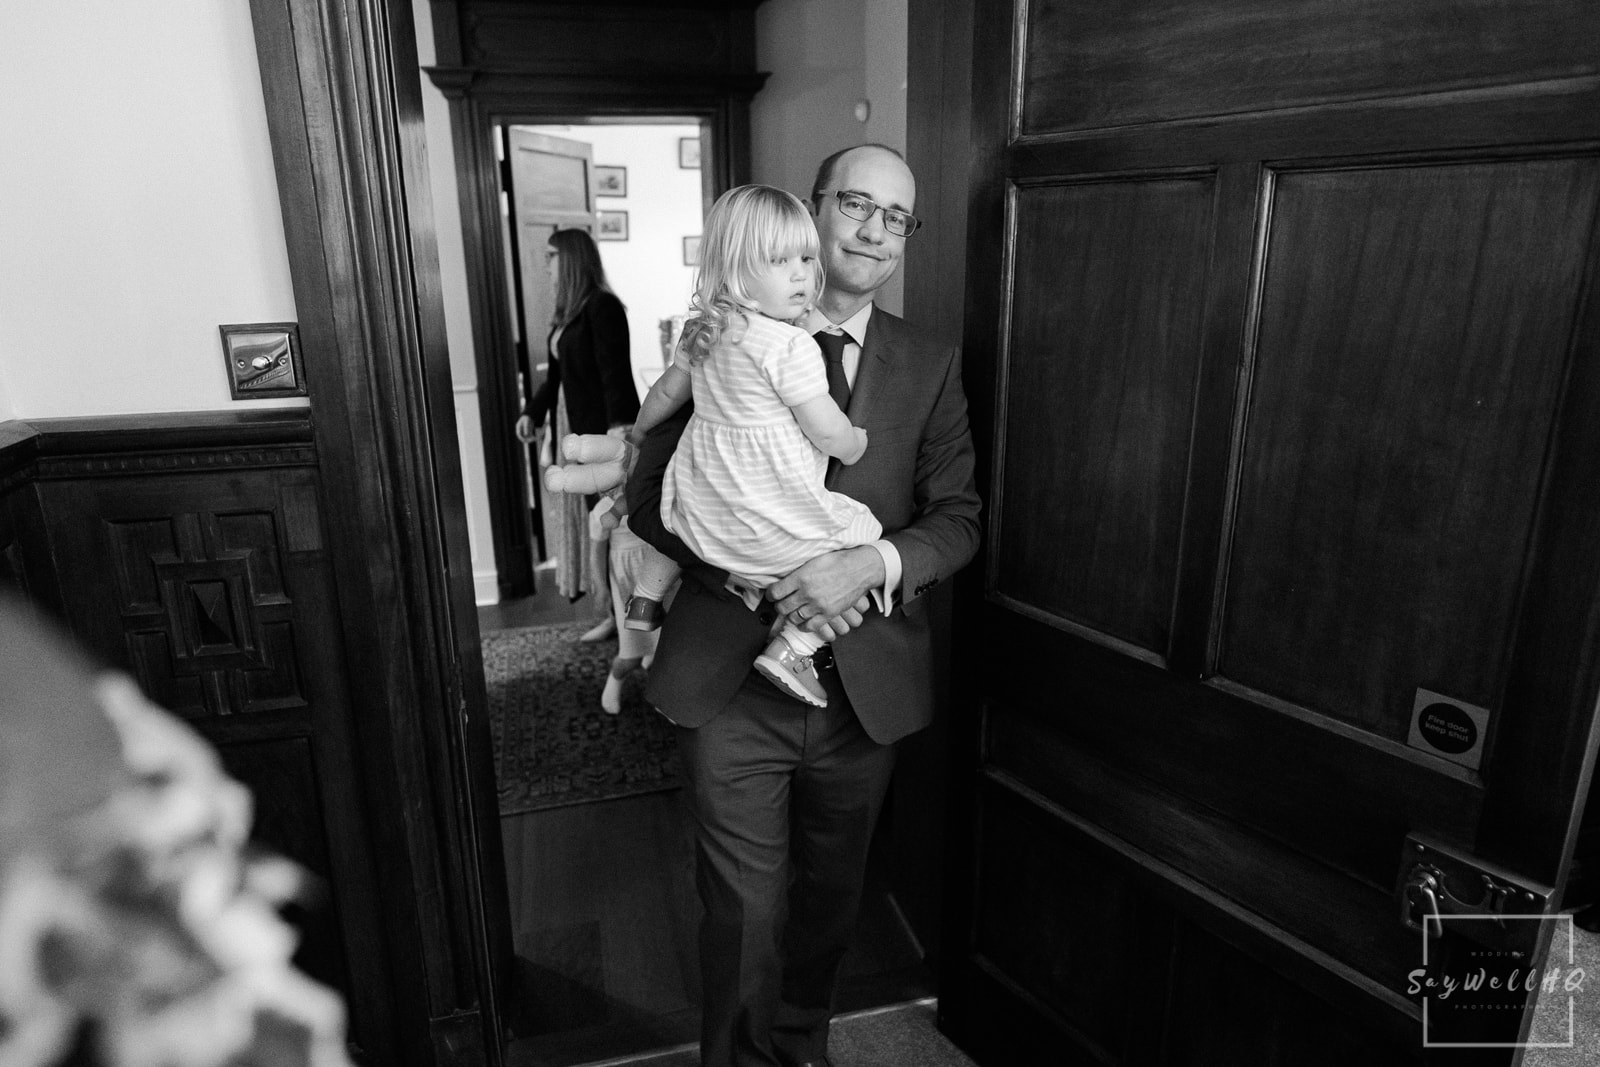 Lincoln Wedding Photography + Spilsby Church Wedding Photographer + wedding guests find their seats for the wedding reception at Skendleby Hall